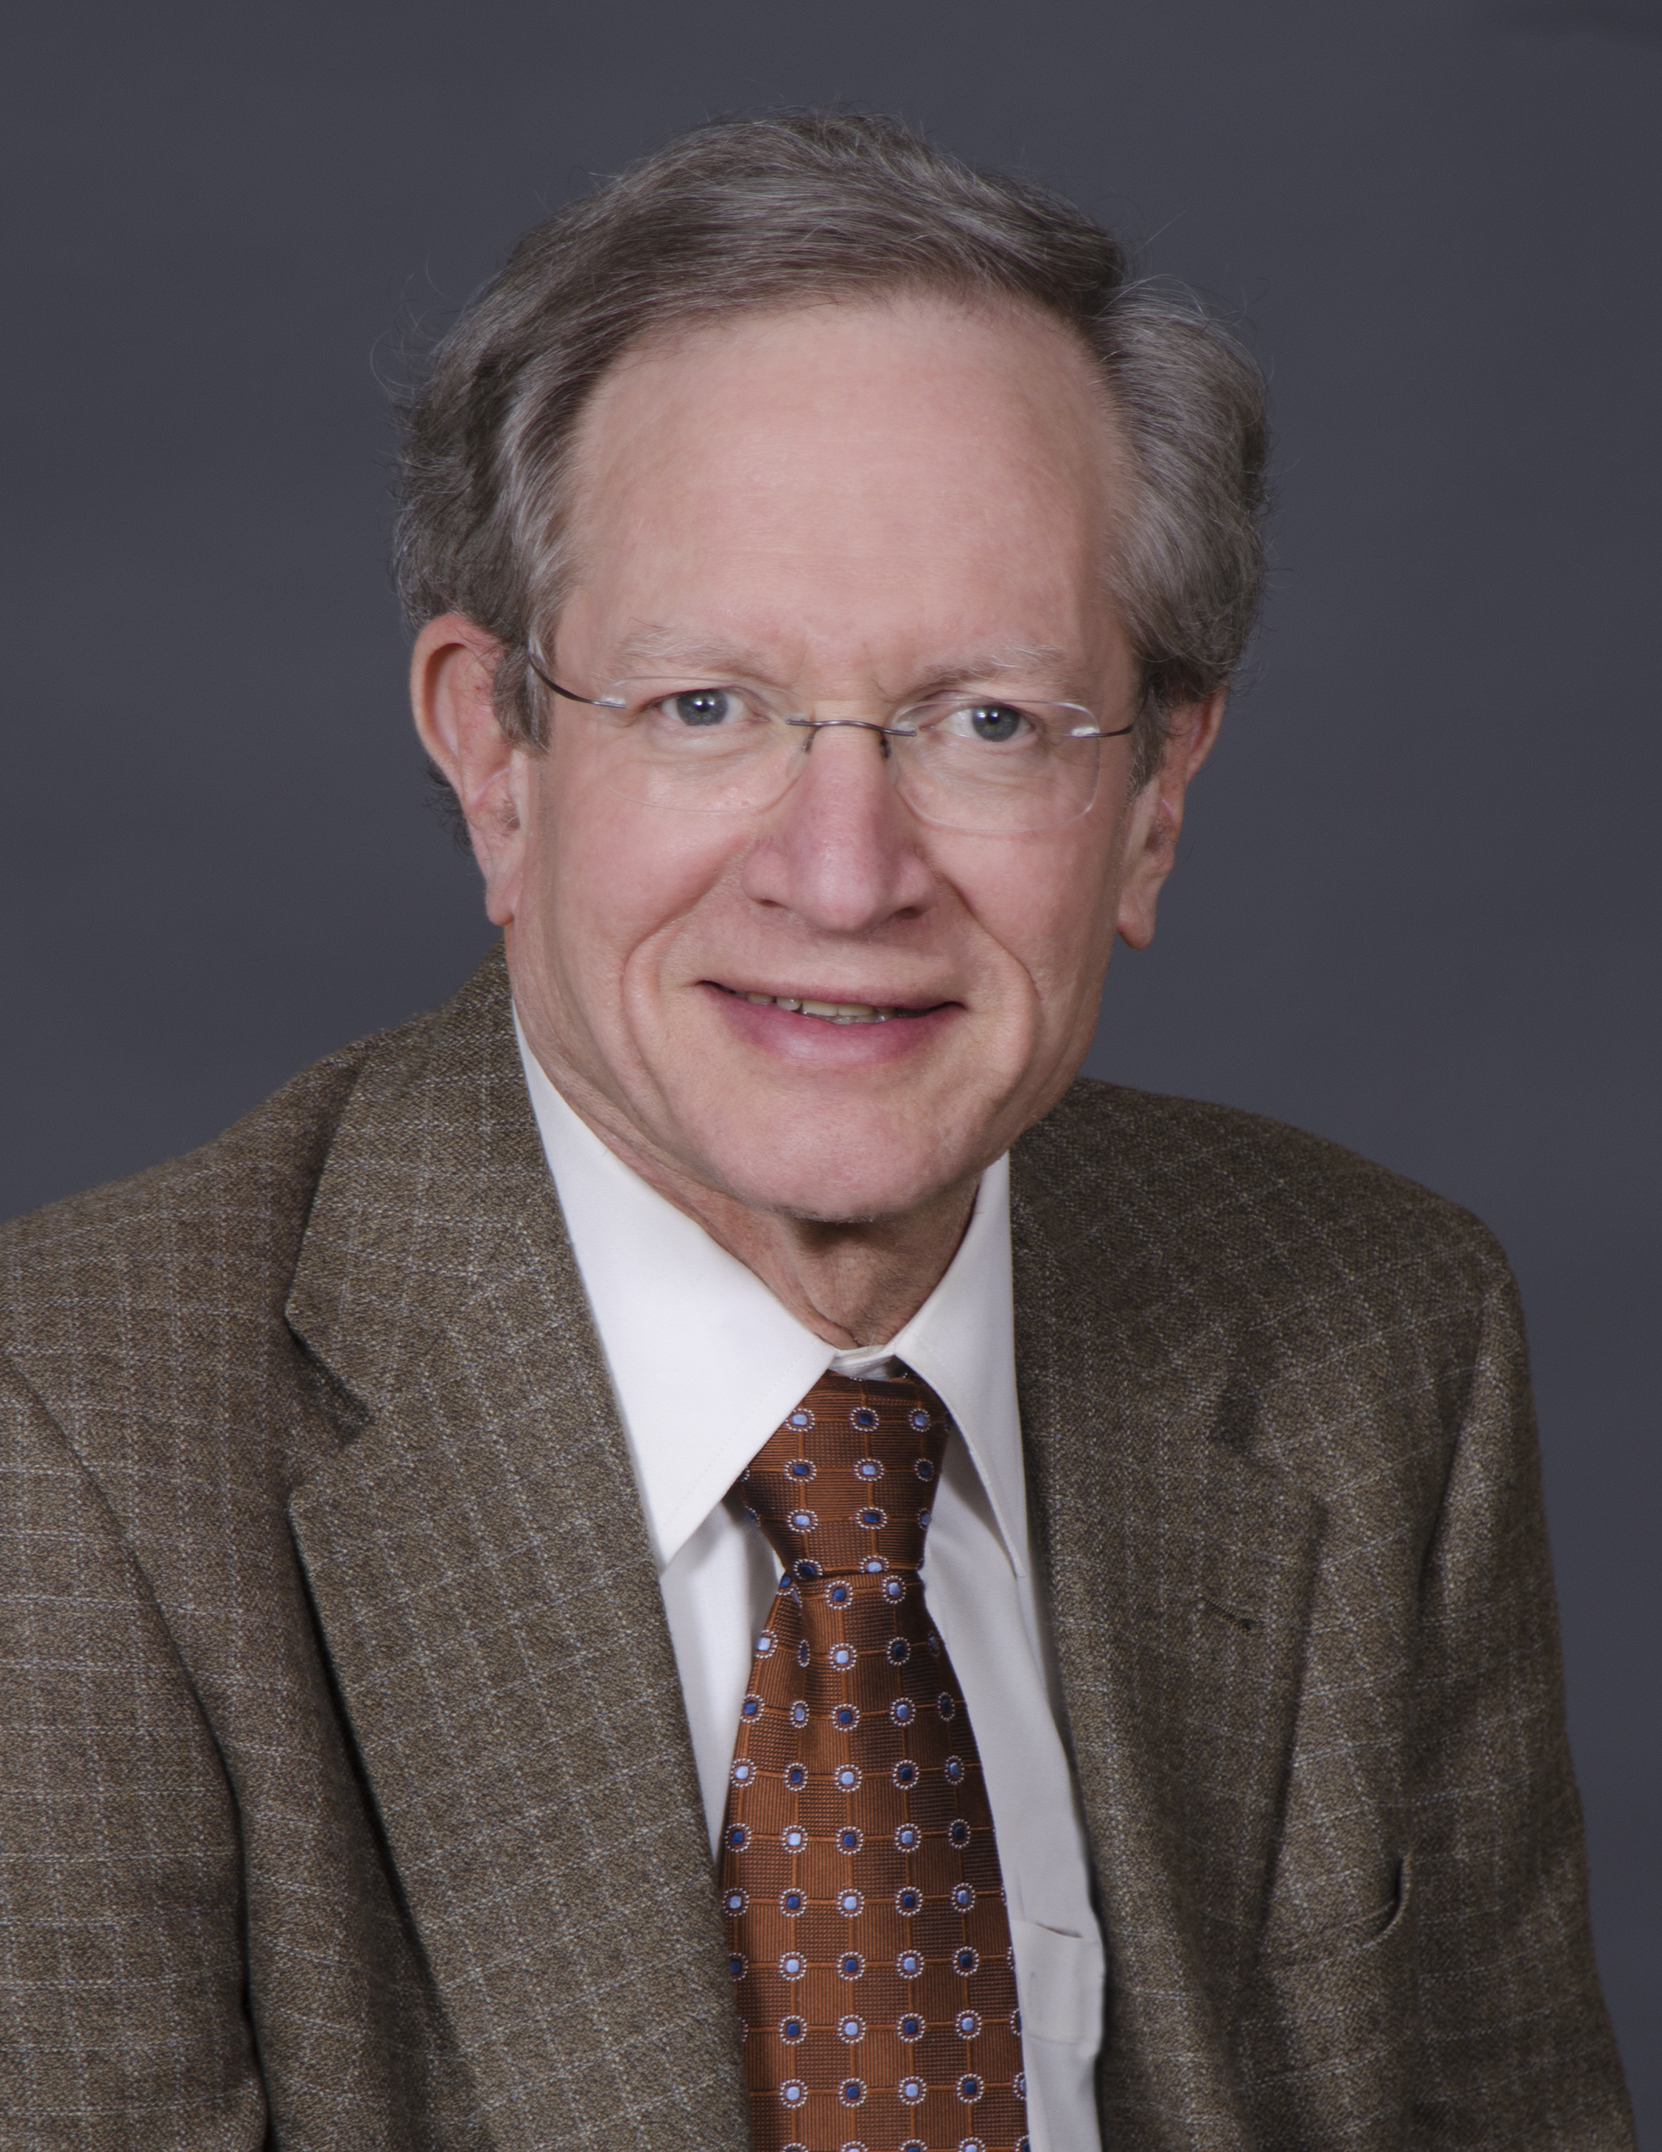 Richard F. Kemper, Treasurer